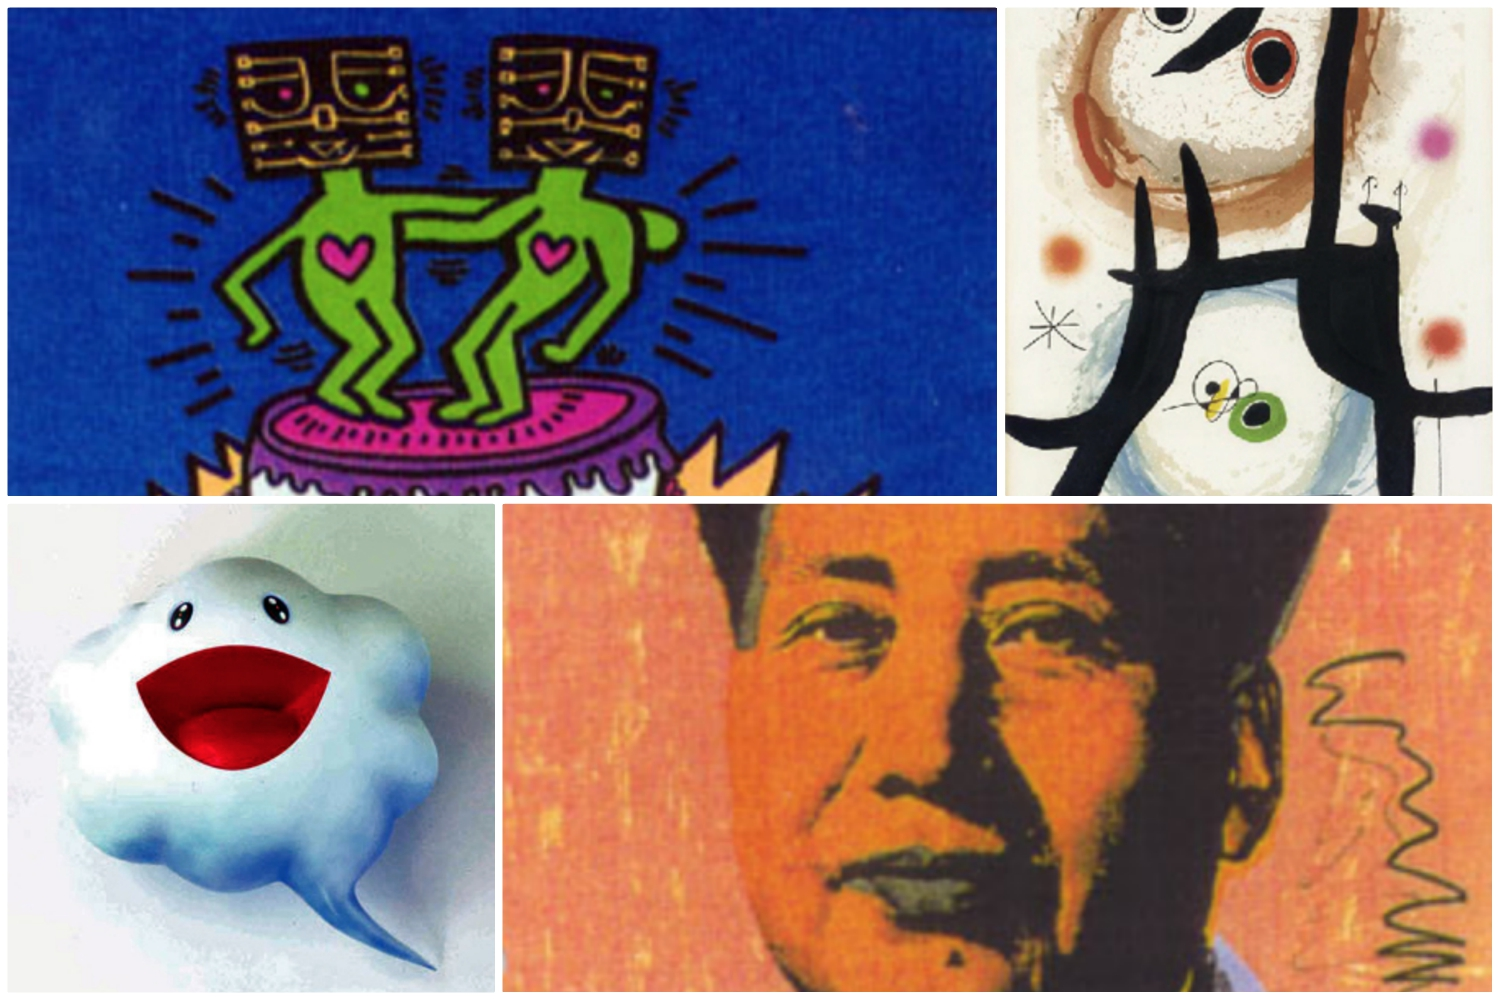 A Peek at Some of the Stolen Art the LAPD Is Trying to Track Down